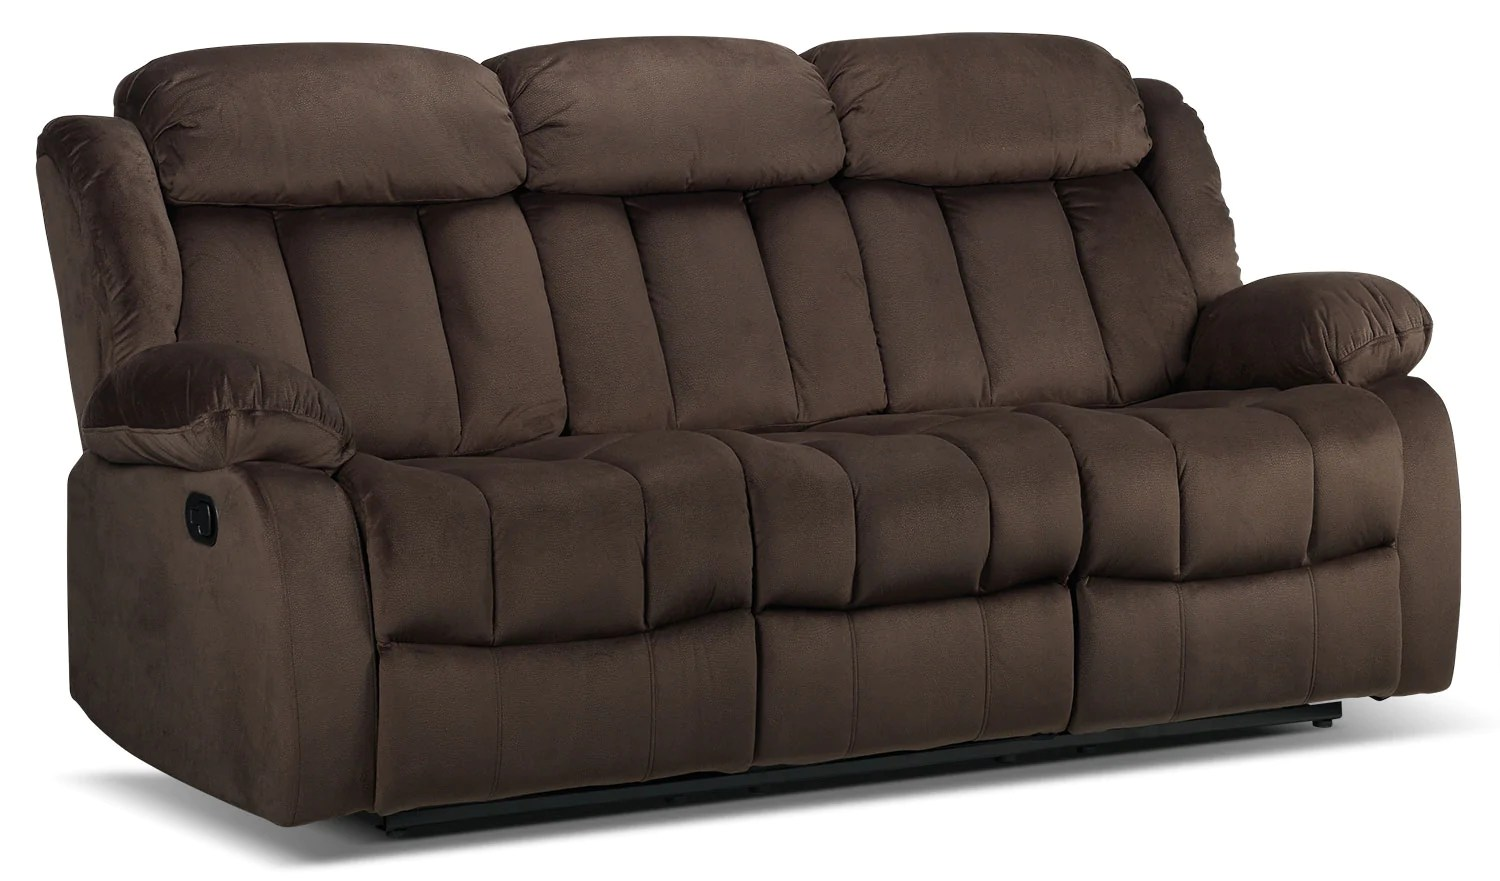 reclining sofa reviews 2017 fabric wooden legs alabama deep brown leon s recently viewed items